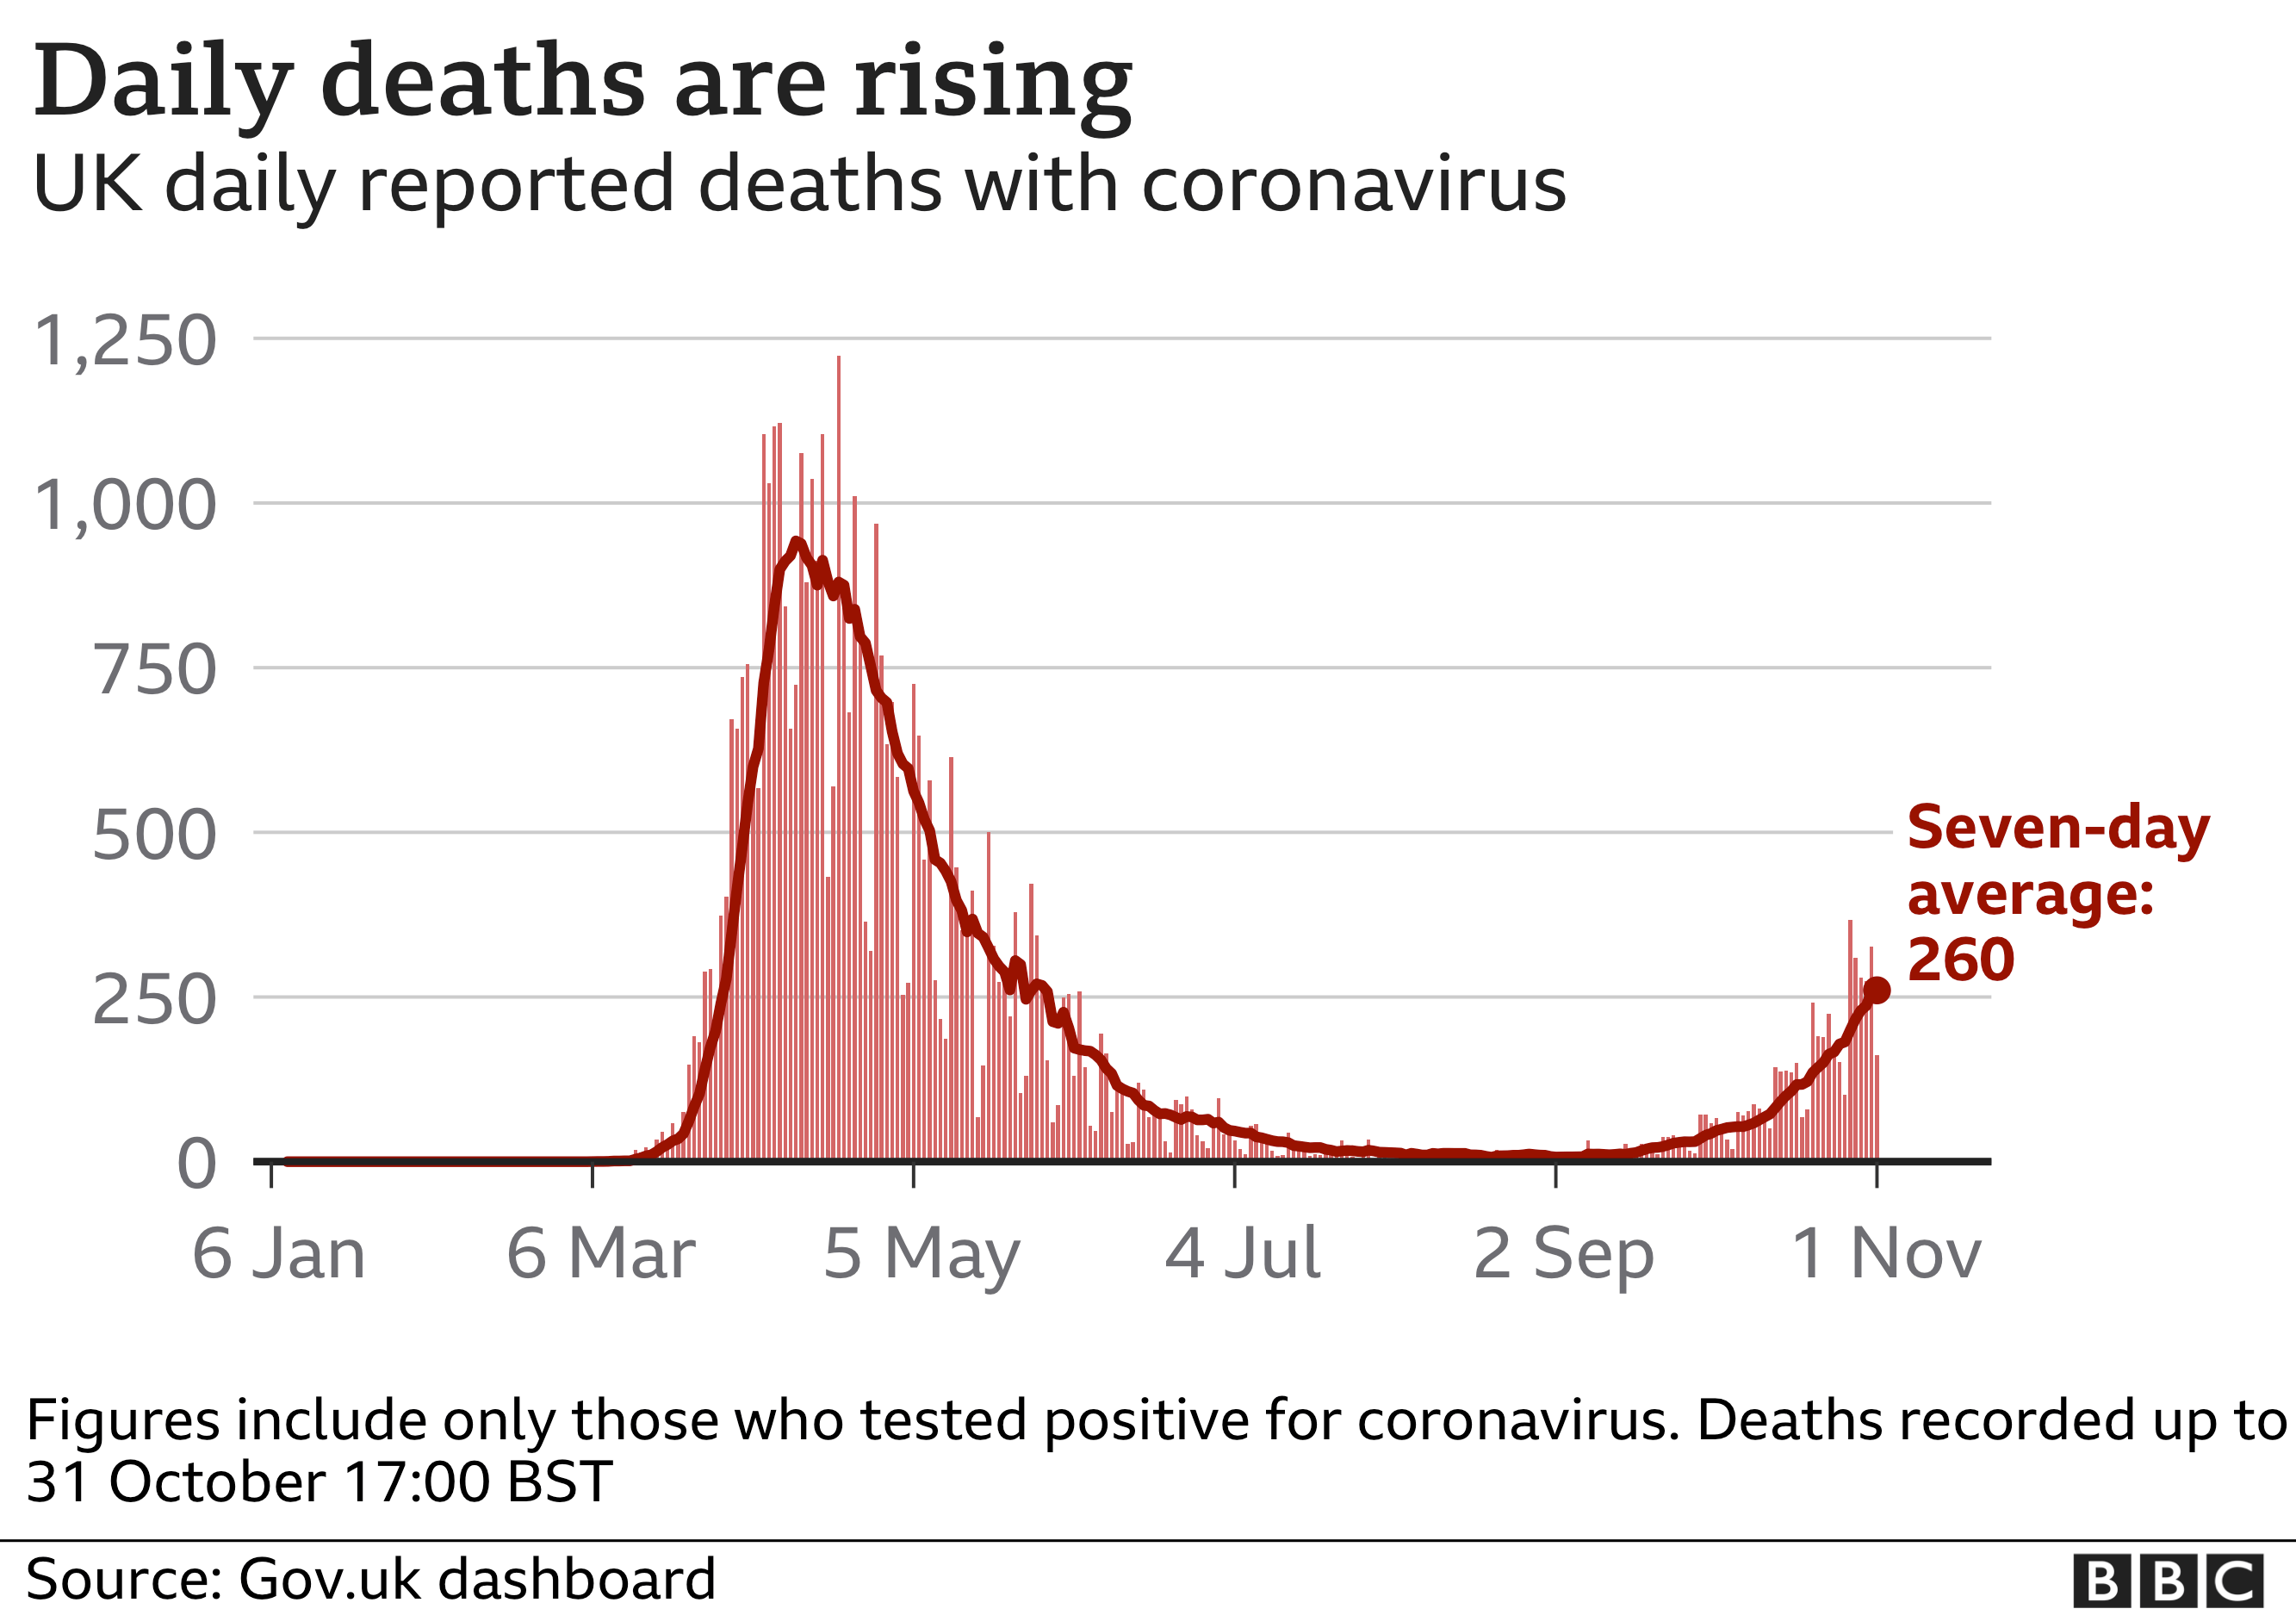 Graph showing UK daily reported deaths